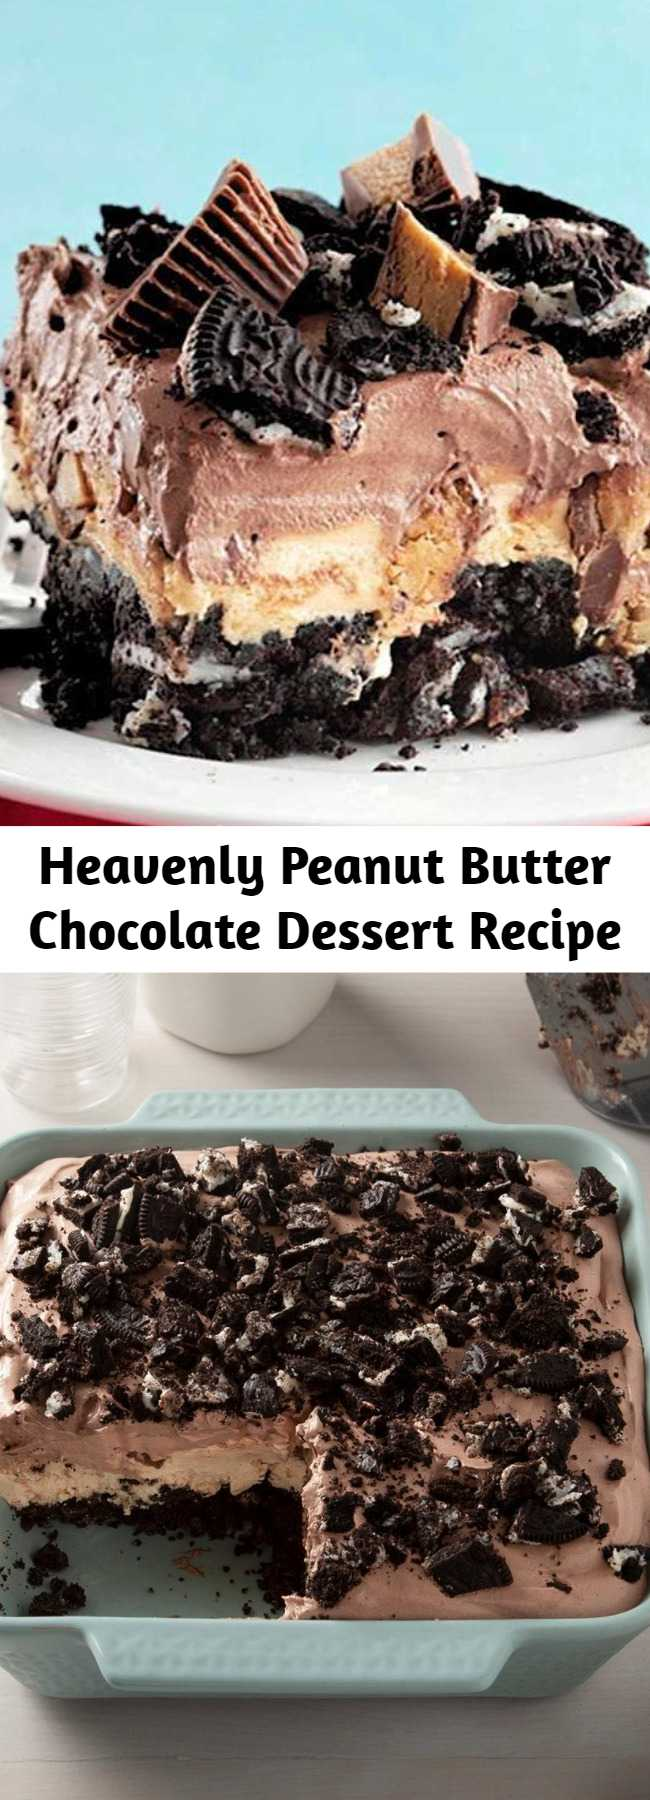 Heavenly Peanut Butter Chocolate Dessert Recipe - The desserts of my dreams have both chocolate and peanut butter. So, when I came up with this rich chocolate and peanut butter dessert, it quickly became my all-time favorite. It's a cinch to whip together because it doesn't require any baking.